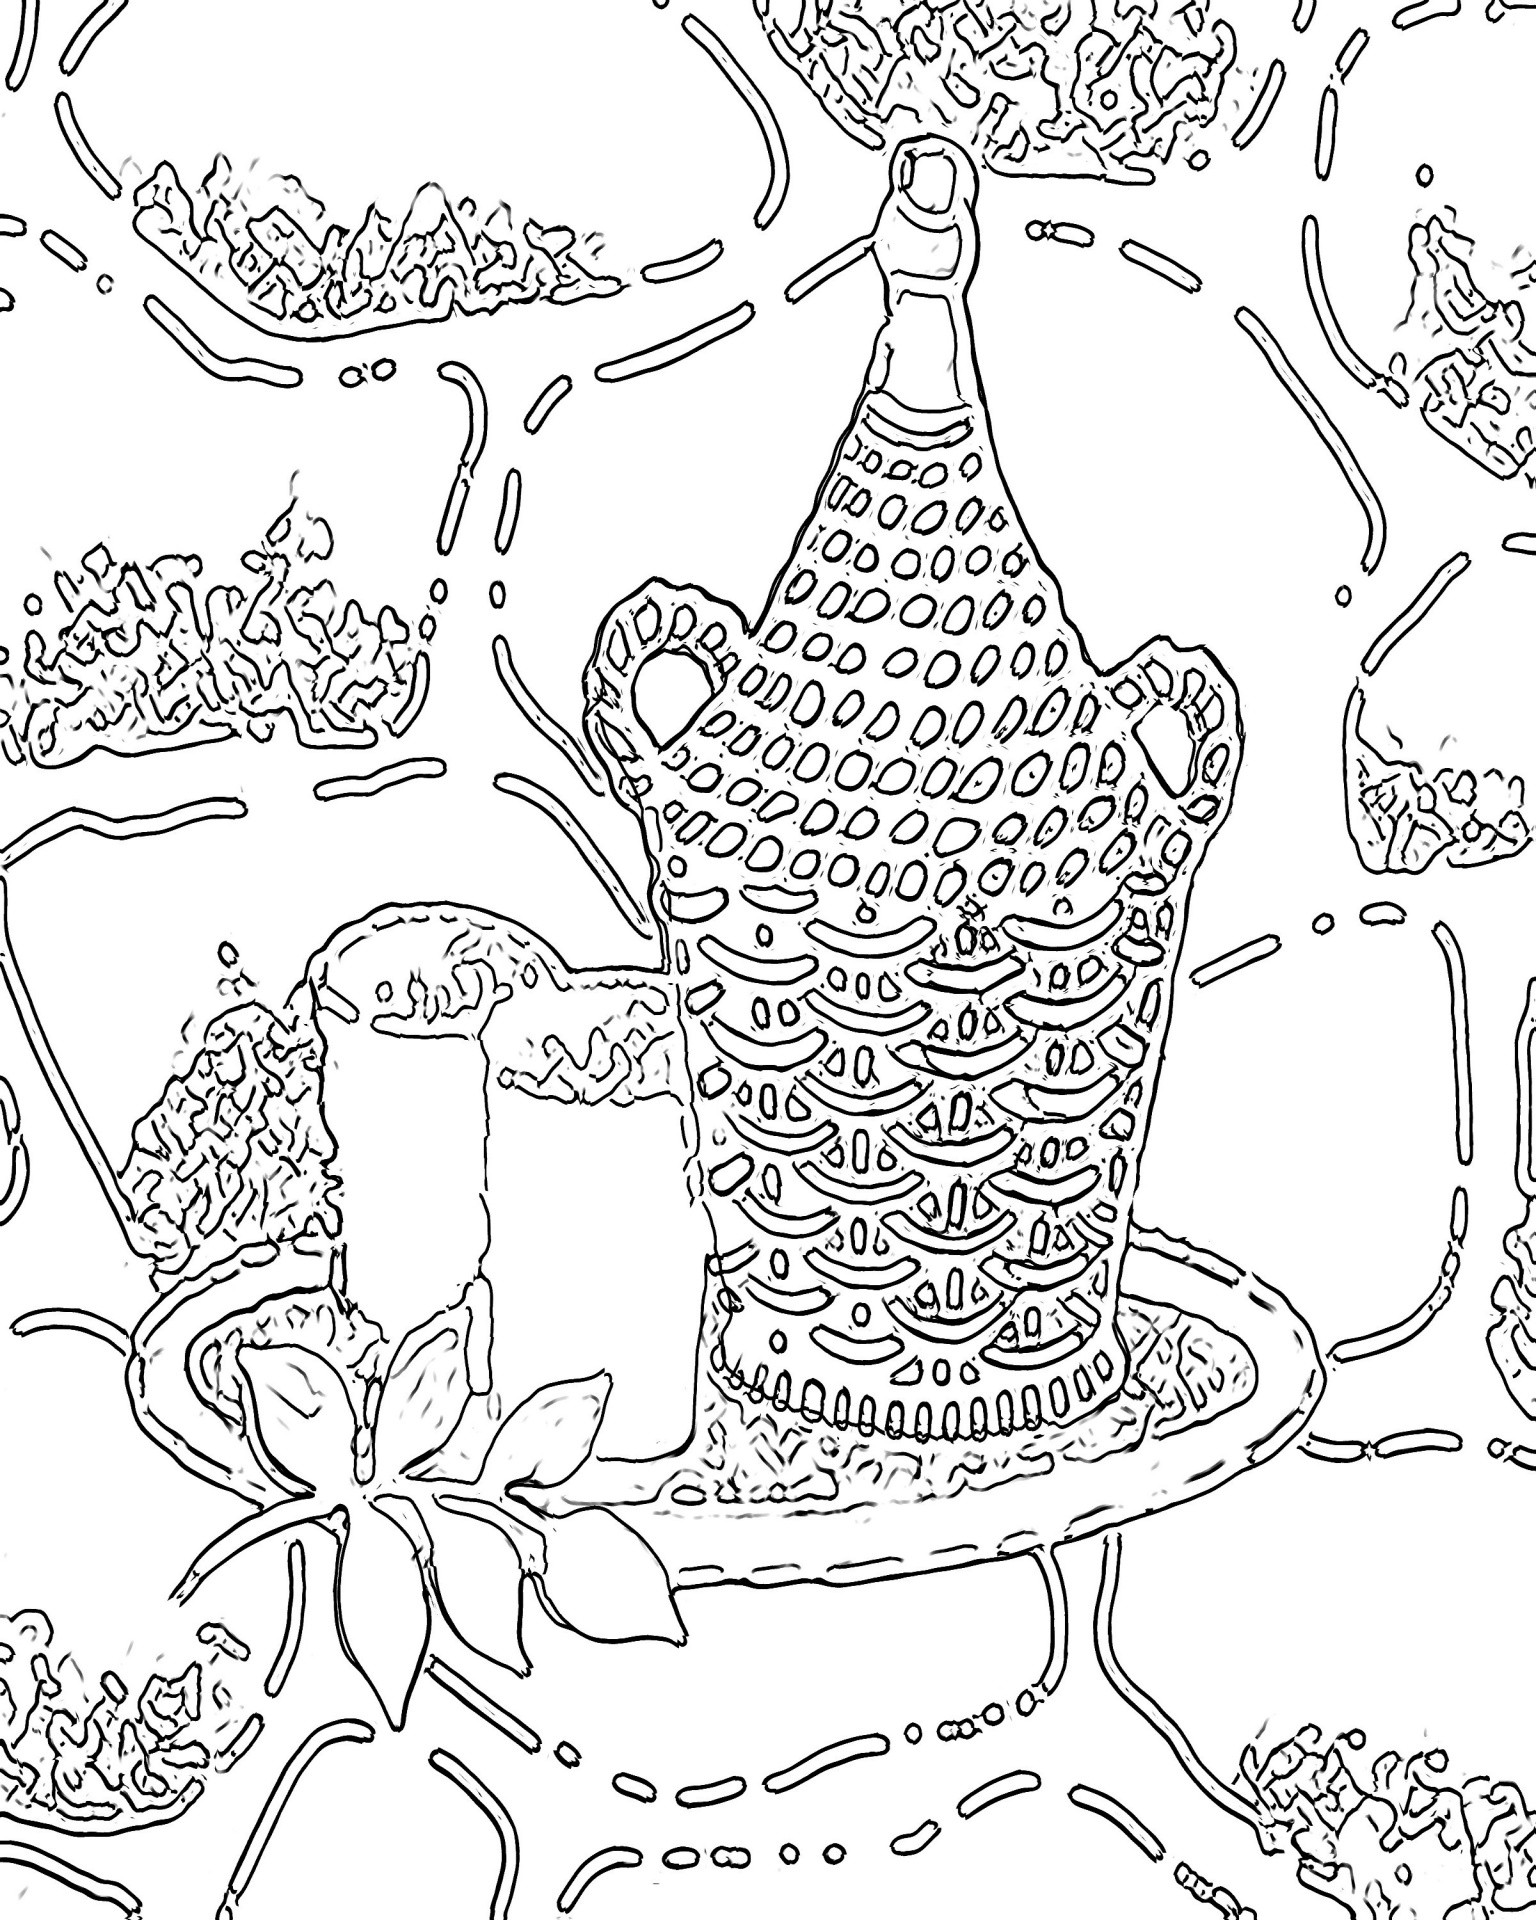 Best ideas about Adult Printable Coloring Pages . Save or Pin Free Printable Abstract Coloring Pages for Adults Now.